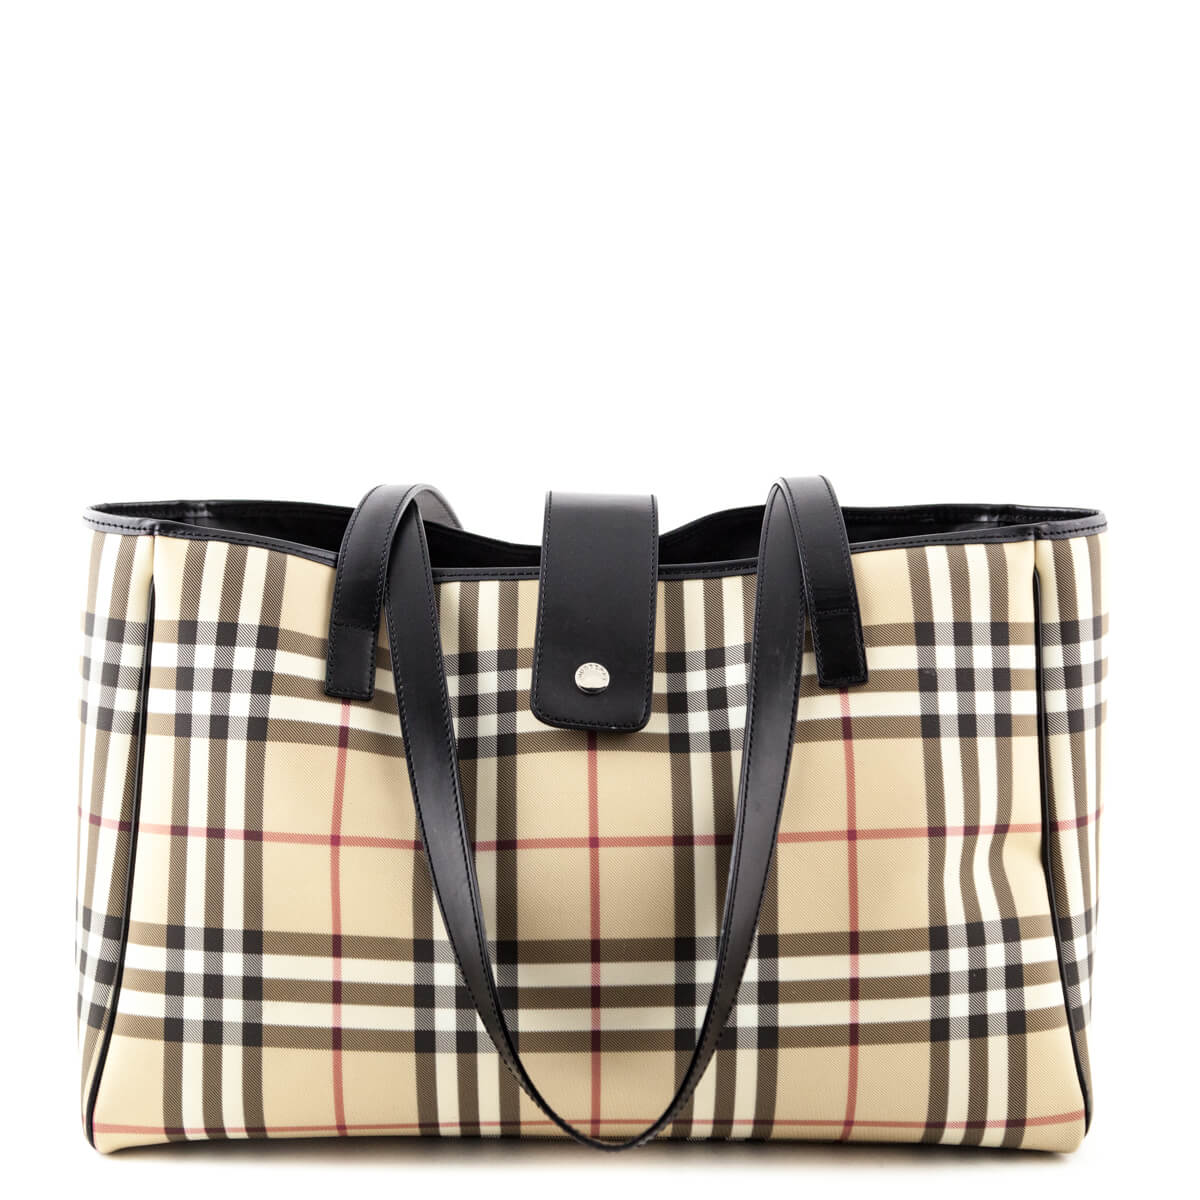 24a430e41bd9 Burberry Nova Check Coated Canvas Tote - LOVE that BAG - Preowned Authentic  Designer Handbags ...